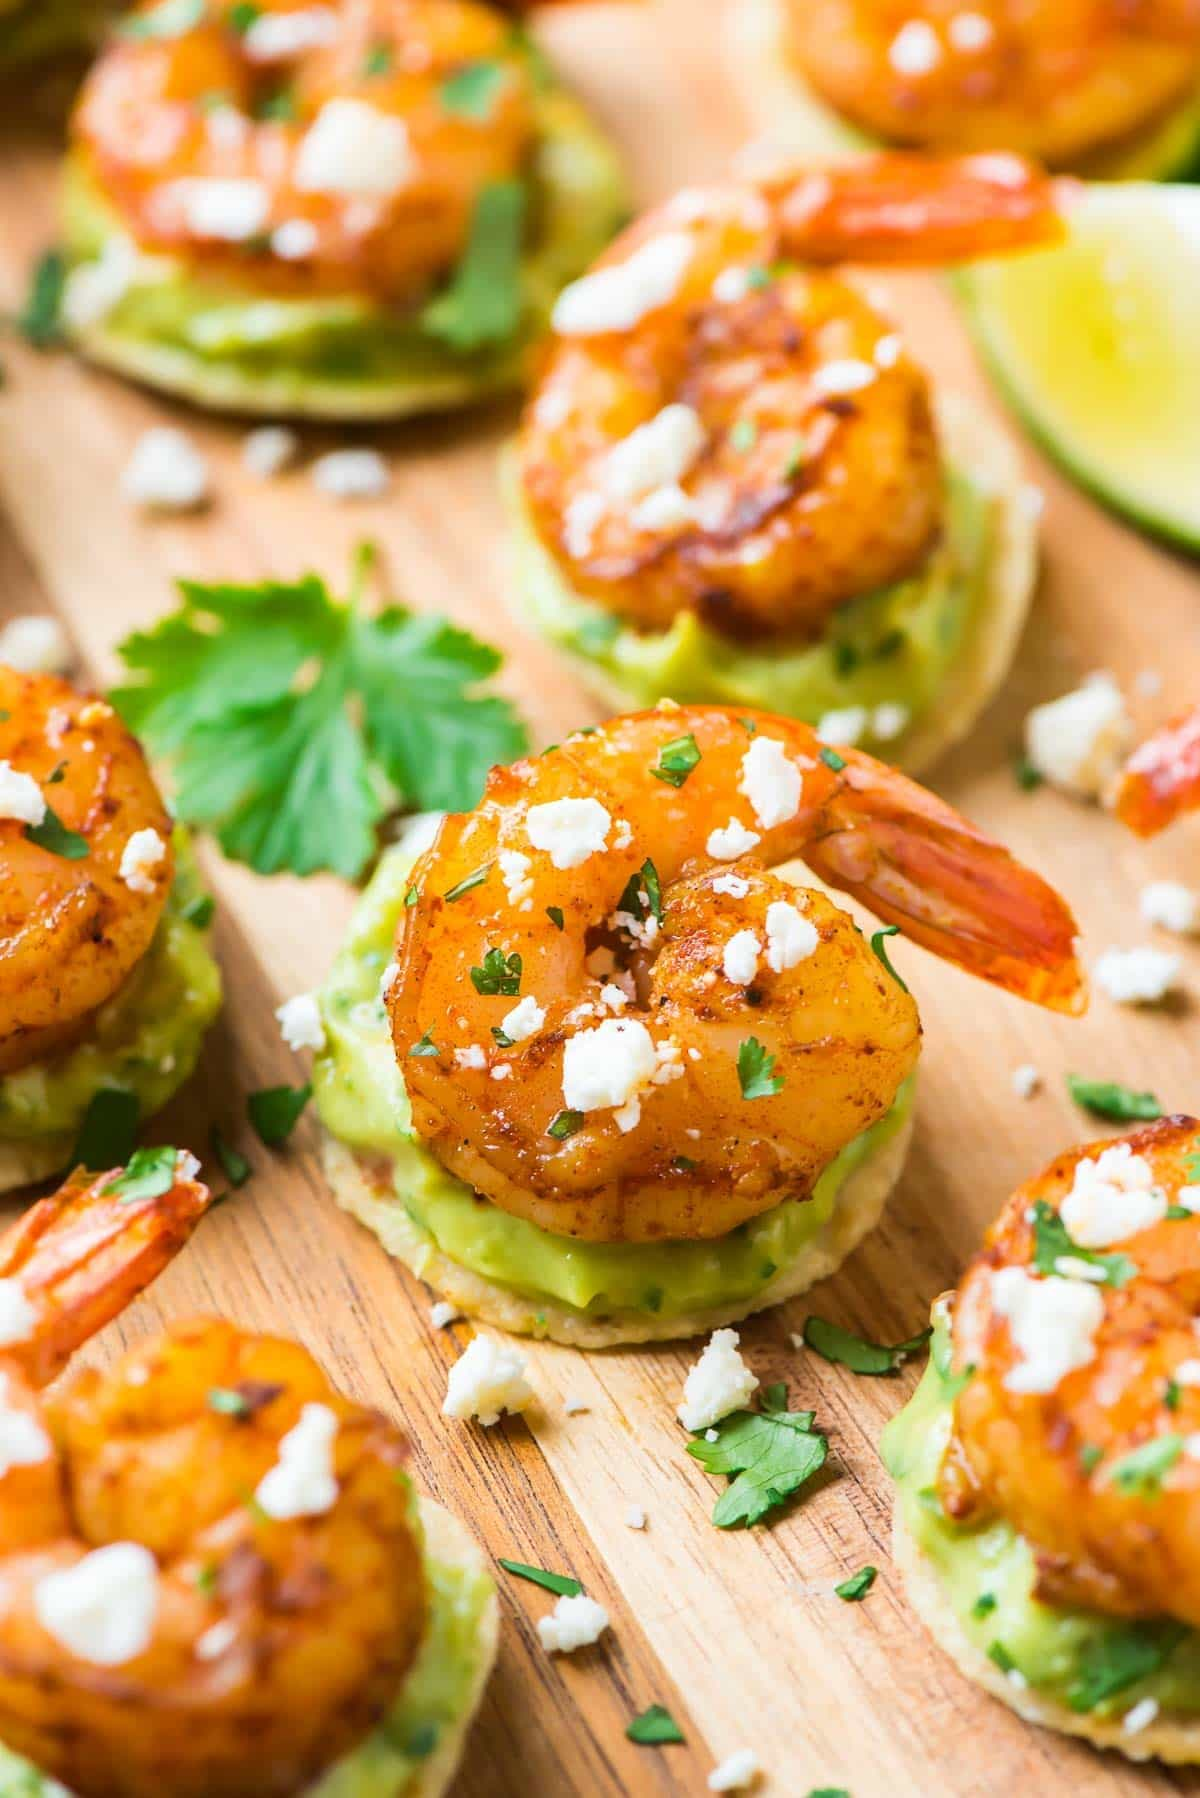 Spicy Guacamole Shrimp Bites. Fast, easy, and SO addictive! The perfect appetizer recipe for your next party, tailgates, or Cinco de Mayo! Recipe at wellplated.com | @wellplated